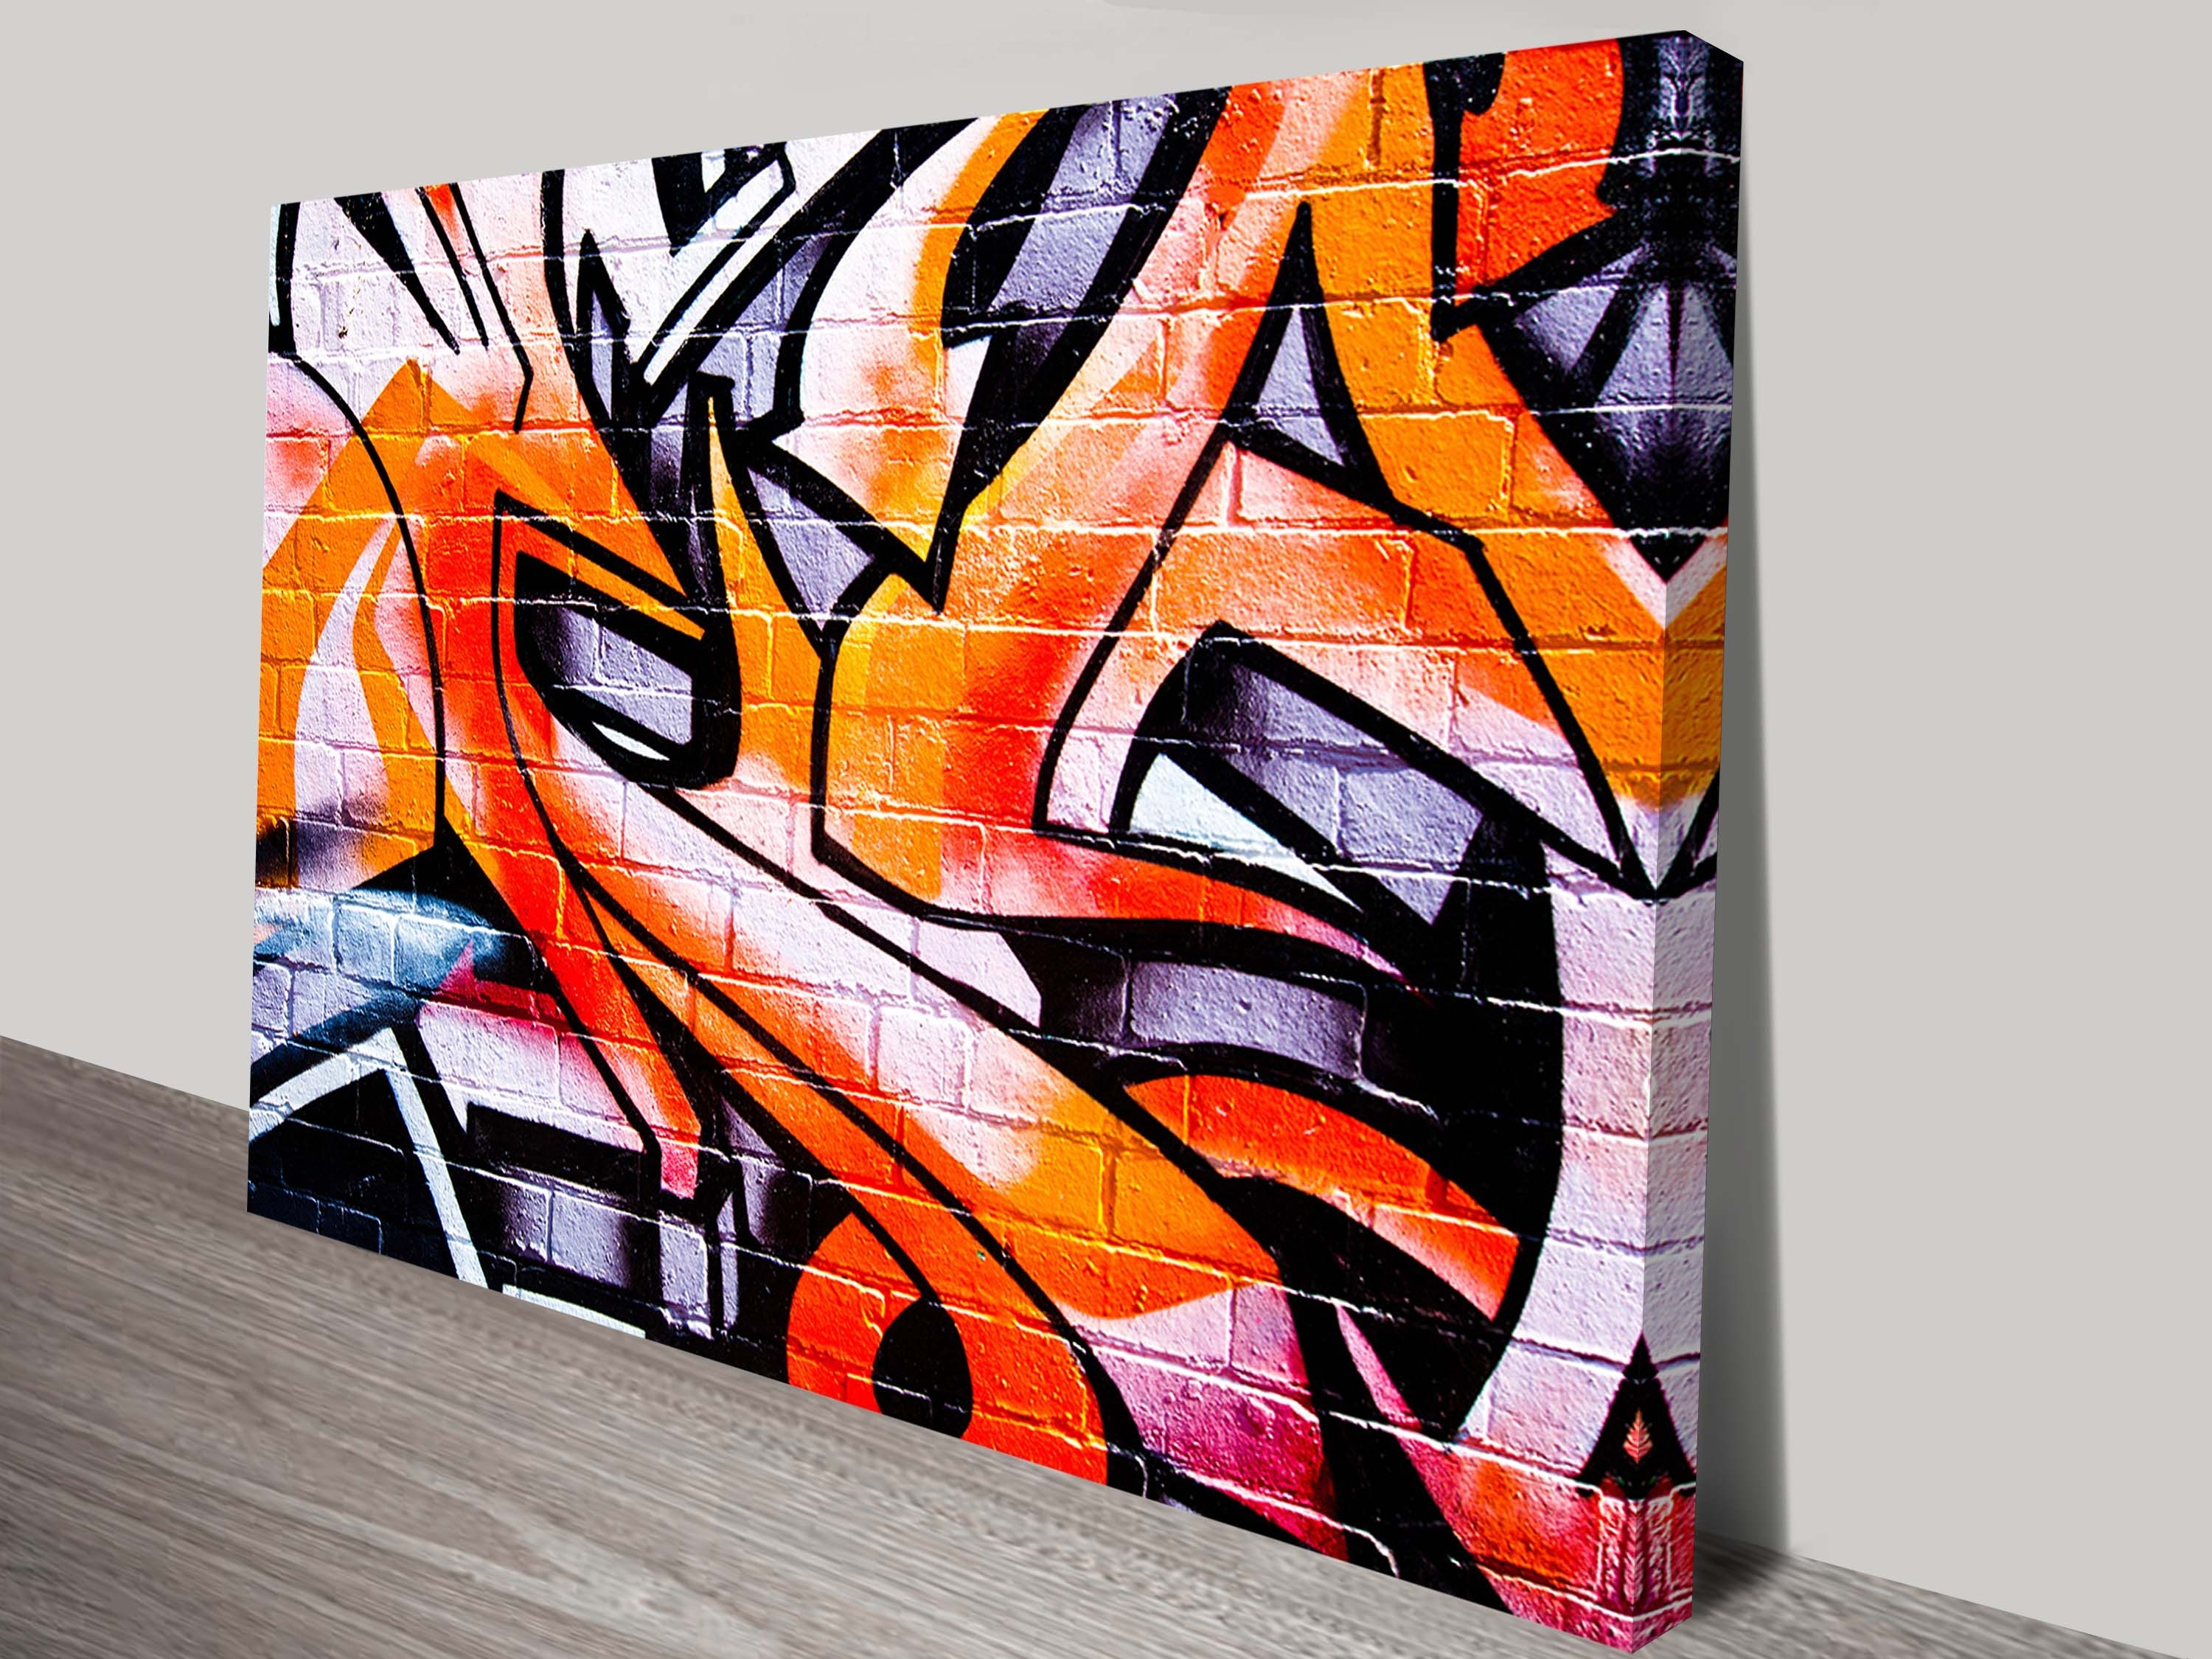 Colourful Orange Graffiti Wall Art - Canvas Prints Australia intended for Graffiti Wall Art (Image 3 of 20)